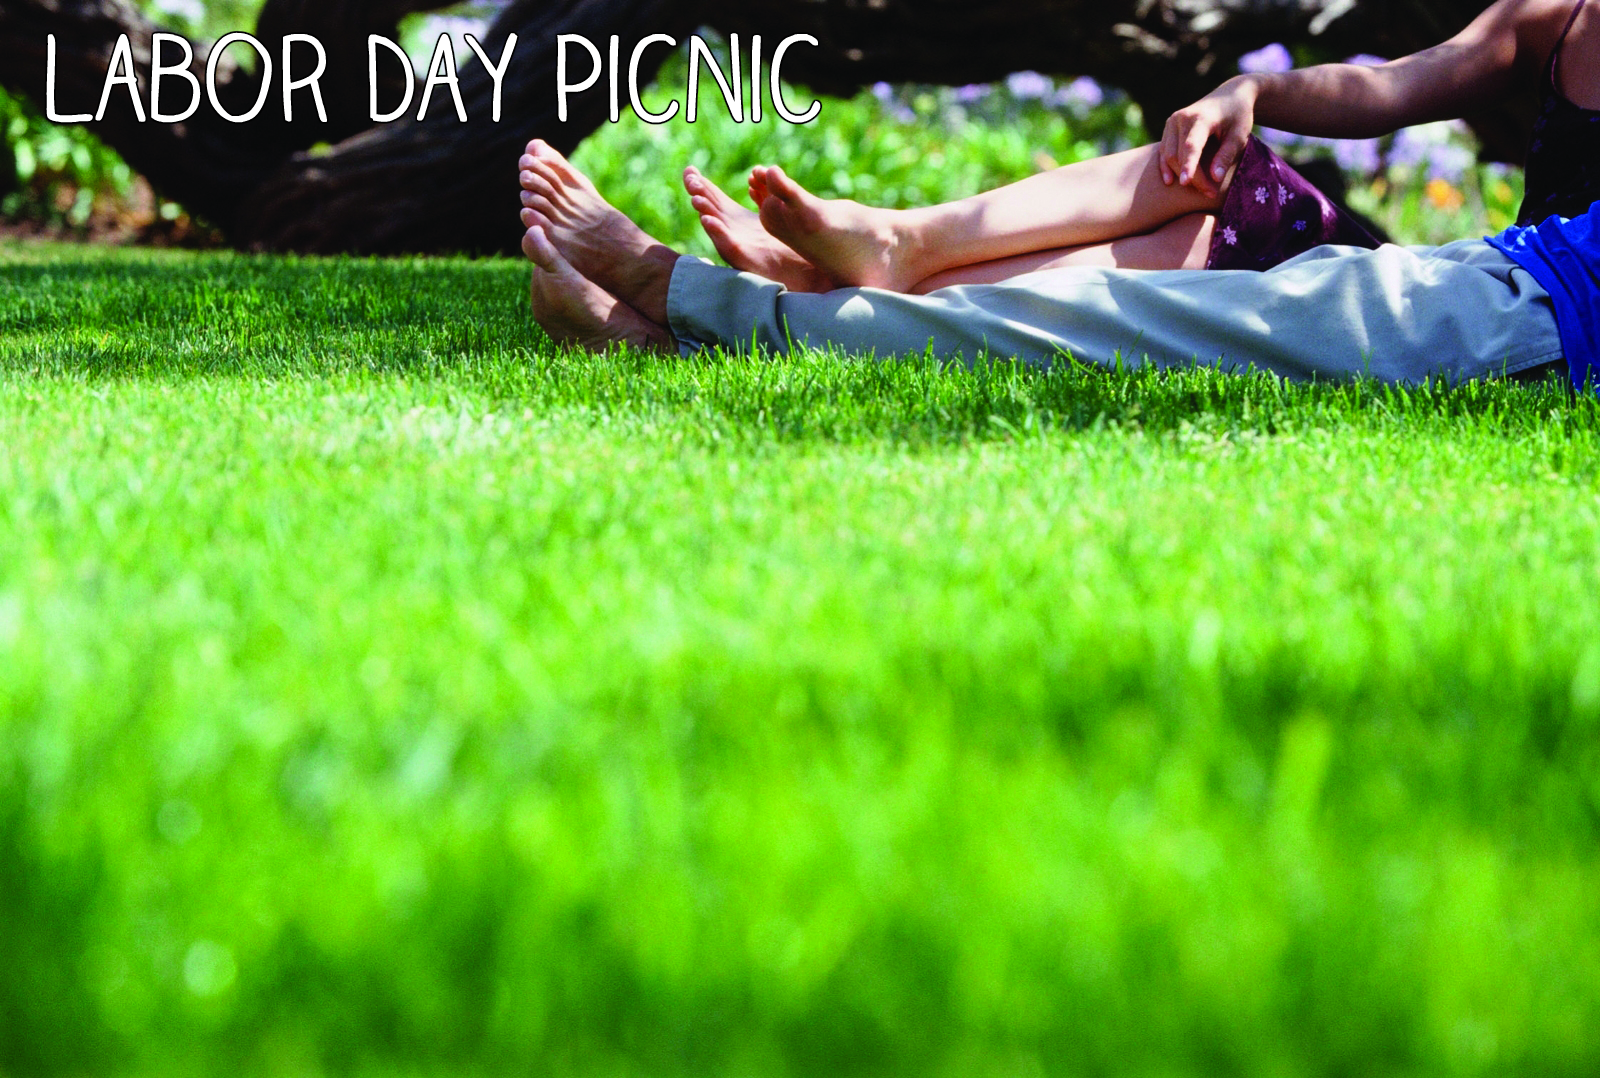 labor day picnic pictures